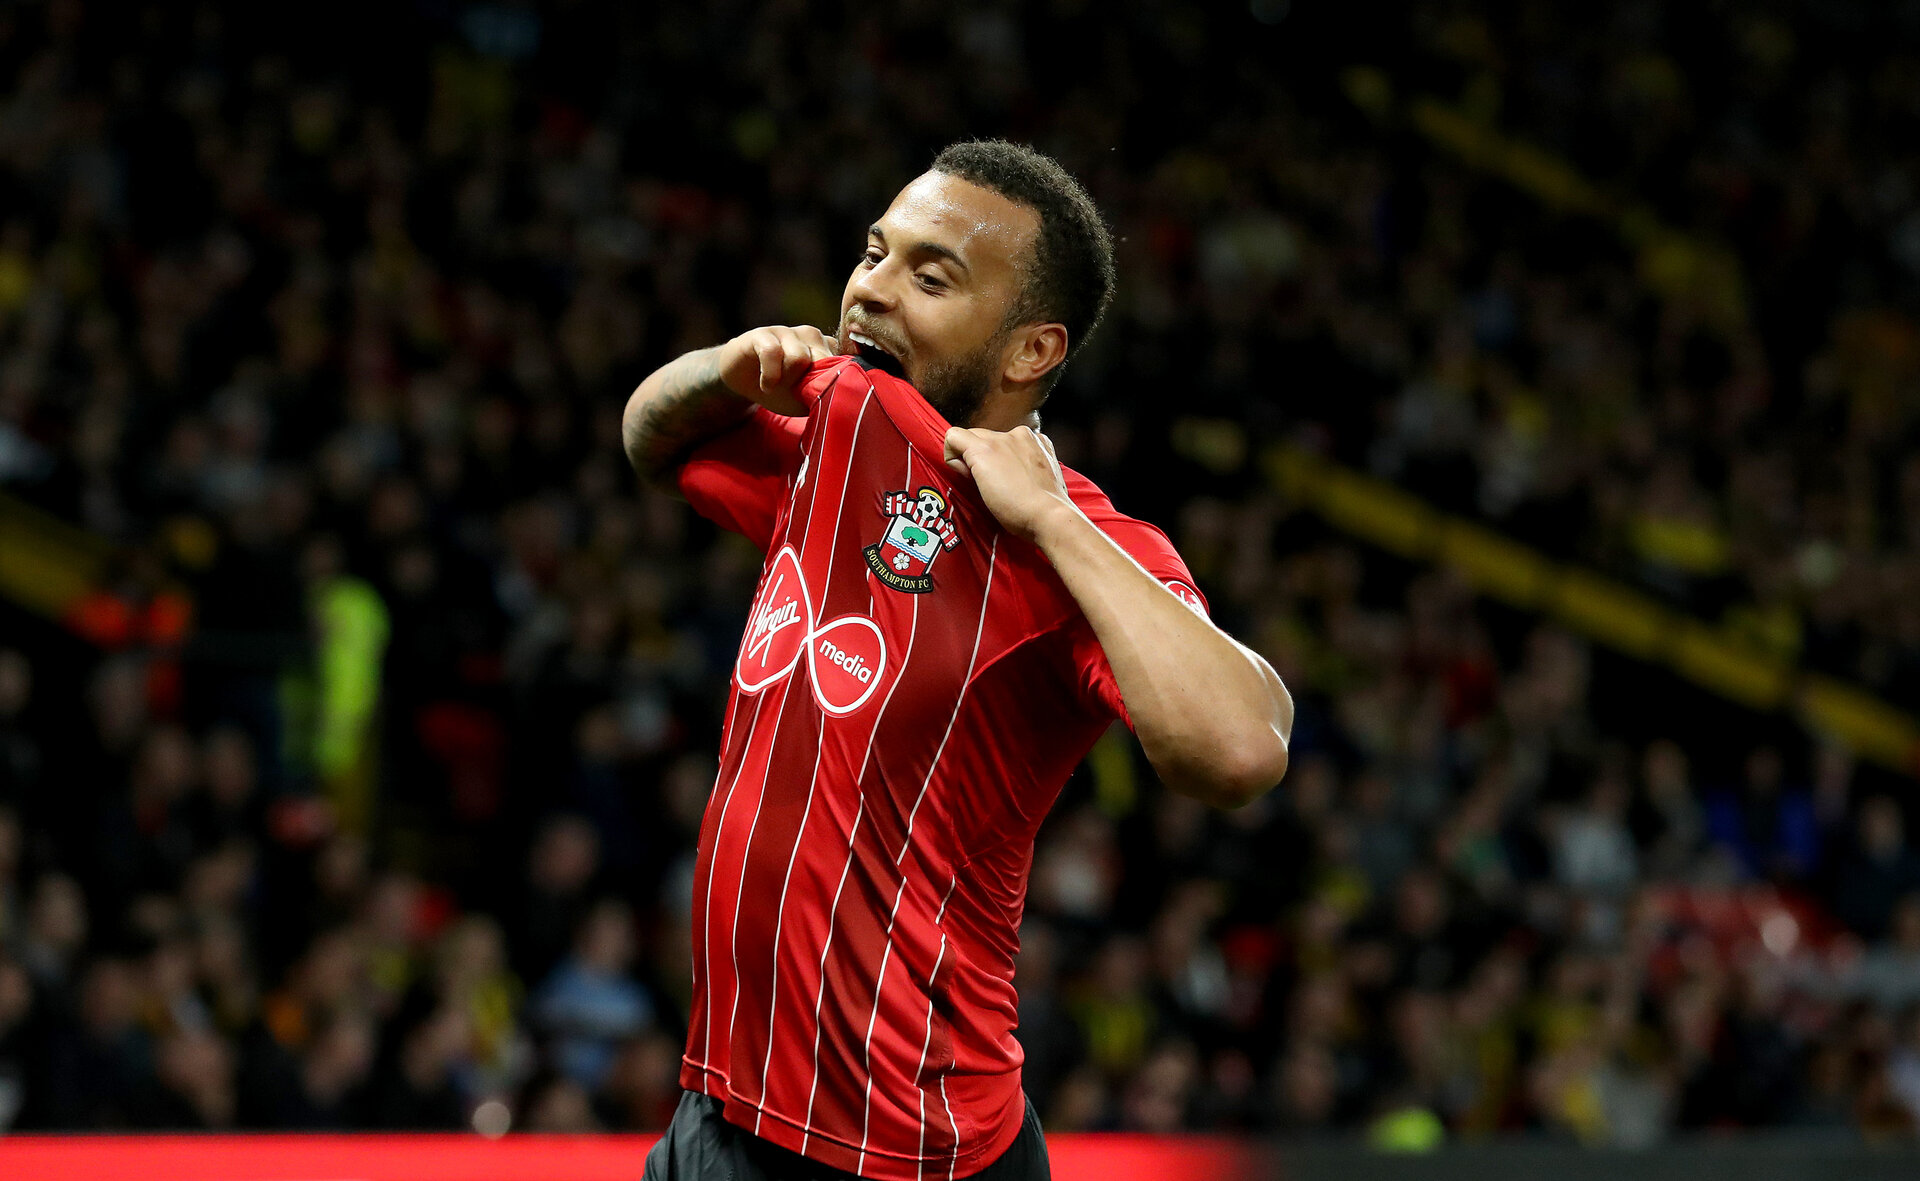 WATFORD, ENGLAND - APRIL 23: Ryan Bertrand of Southampton during the Premier League match between Watford FC and Southampton FC at Vicarage Road on April 23, 2019 in Watford, United Kingdom. (Photo by Matt Watson/Southampton FC via Getty Images)